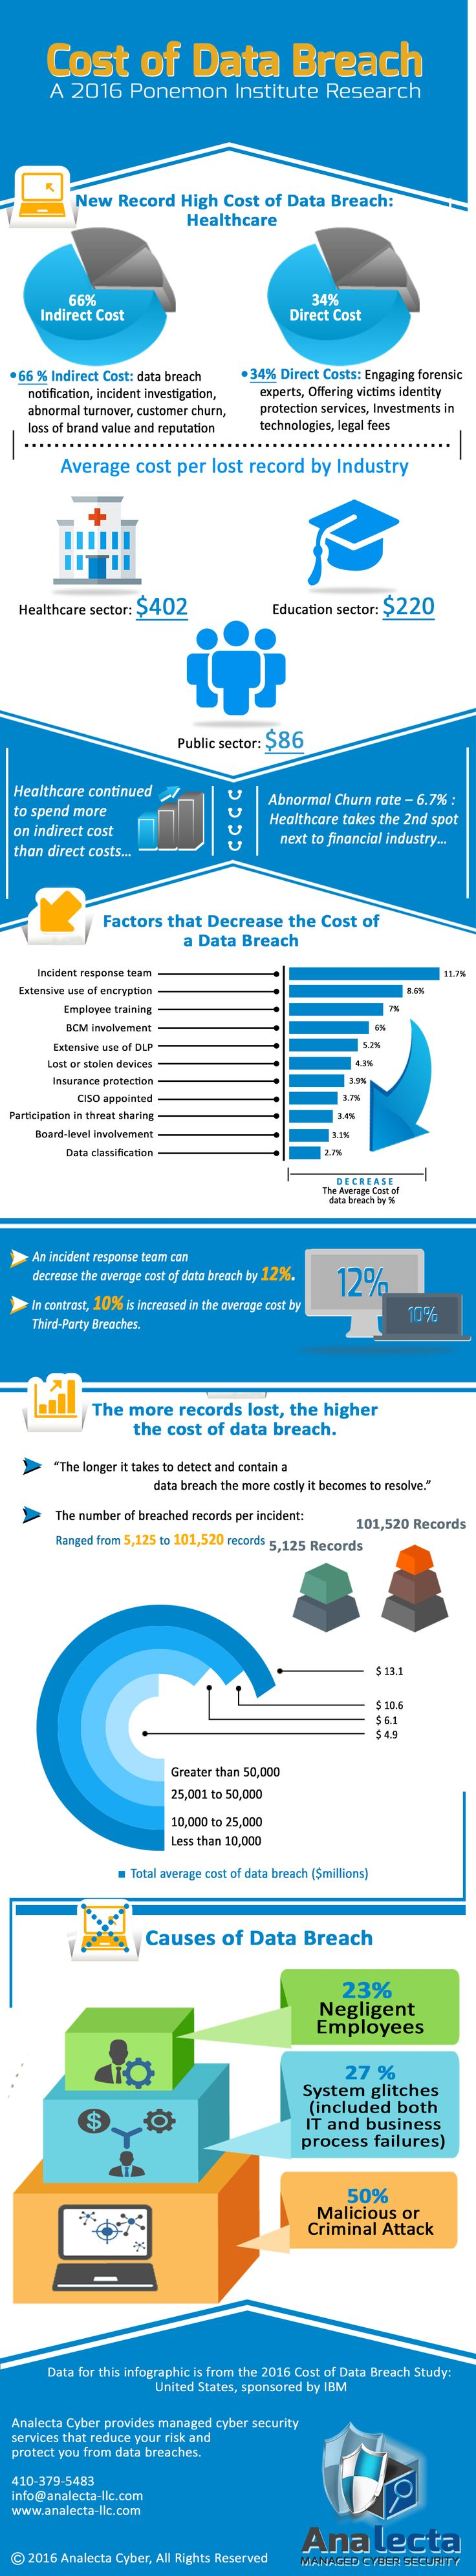 """New record high cost of data breach in healthcare: $402 per compromised record.  66% is accounted for indirect cost while 34% for the direct costs.    #healthcare continued to spend more on indirect costs than direct costs.   Having an incidence response team in the organization decrease the average cost of data breach by 12%.    """"The more records lost, the higher the cost of data breach.""""  https://www.analecta-llc.com #cybersecurity #databreaches #healthrecords #ITSecurity #HealthIT #EHR"""